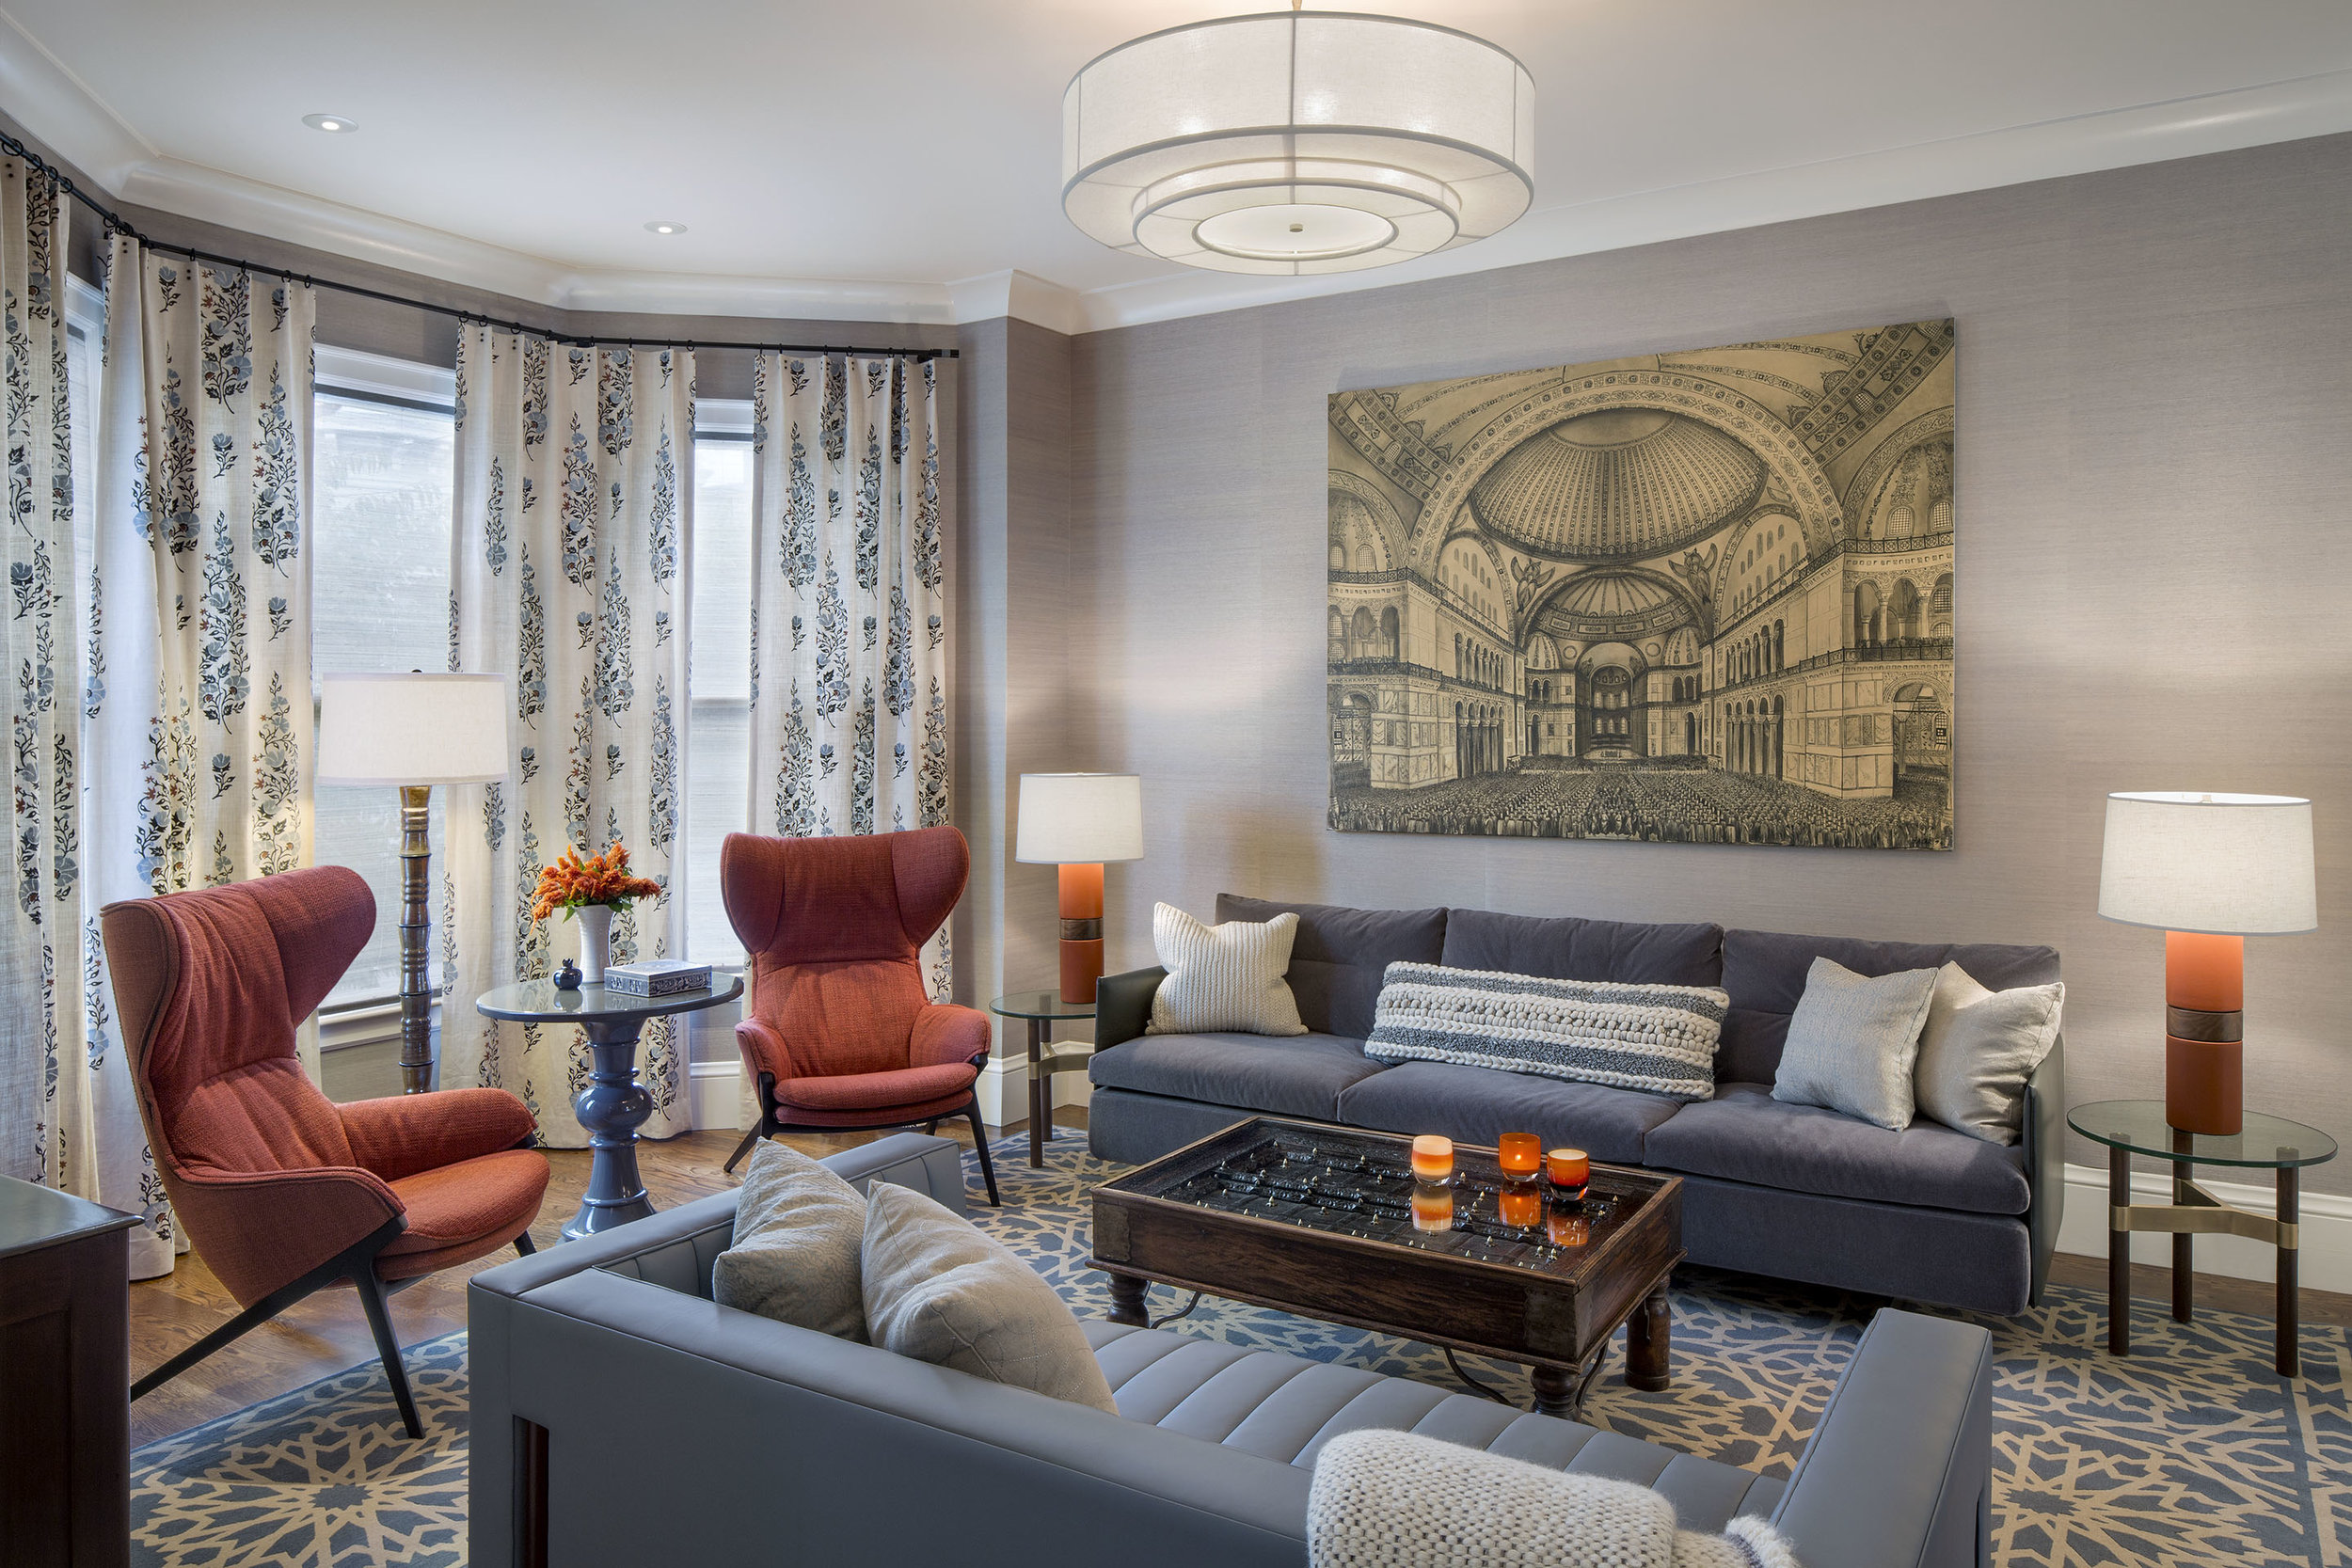 Urban Edwardian with Global Flair by Lotus Bleu Design